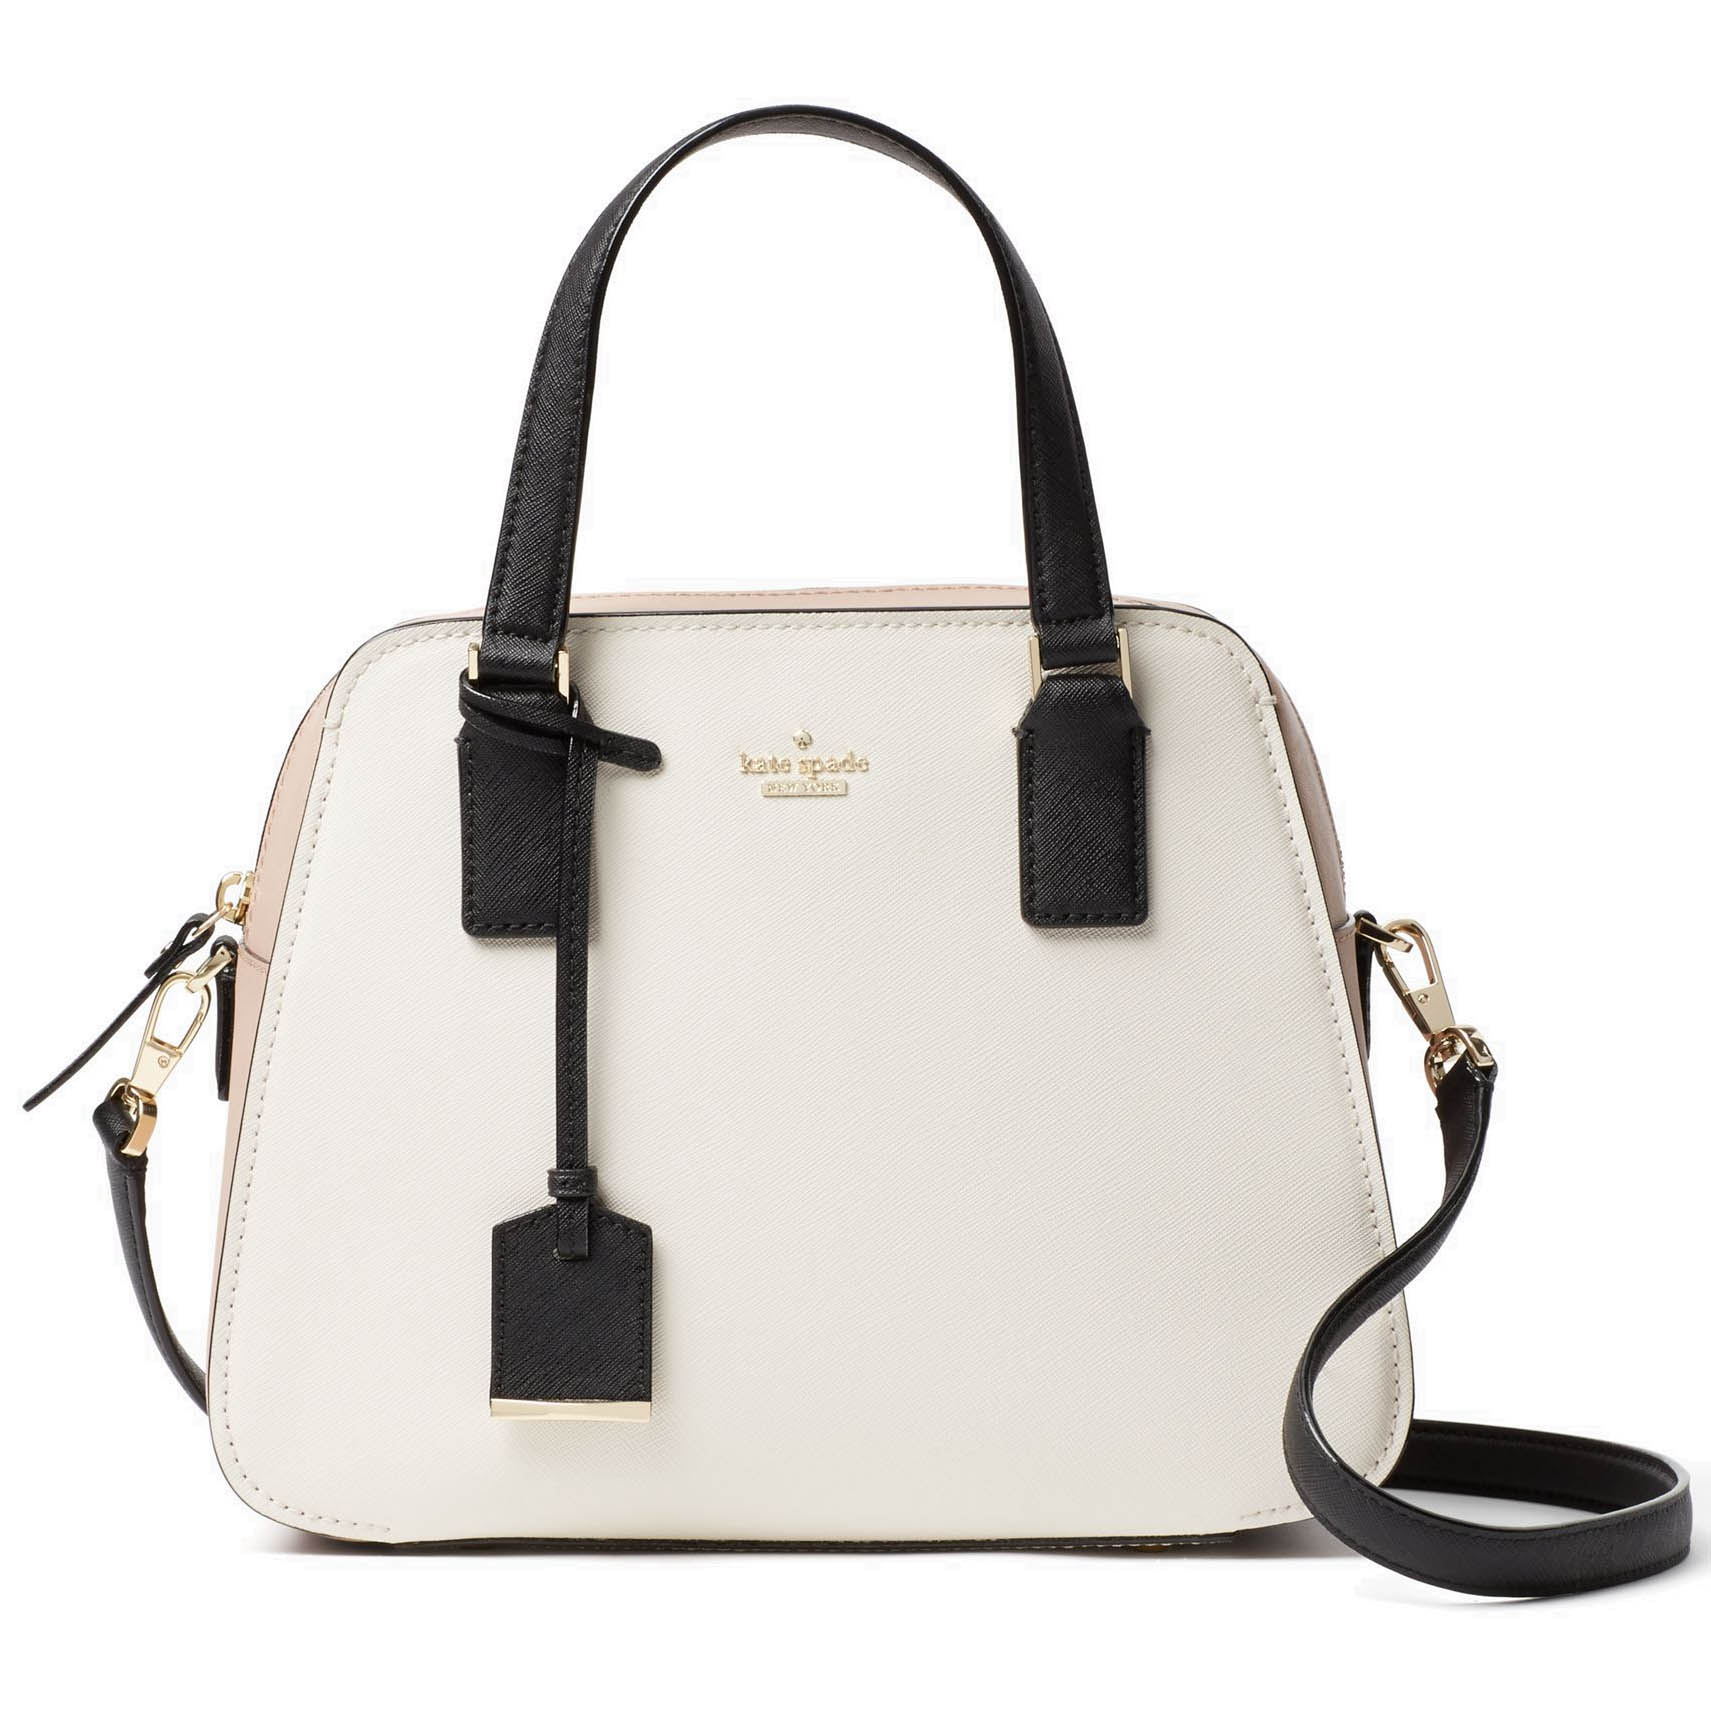 Kate Spade Cameron Street Little Babe Satchel Crossbody Bag Toasted Wheat Multi White Nude Black # PXRU7445